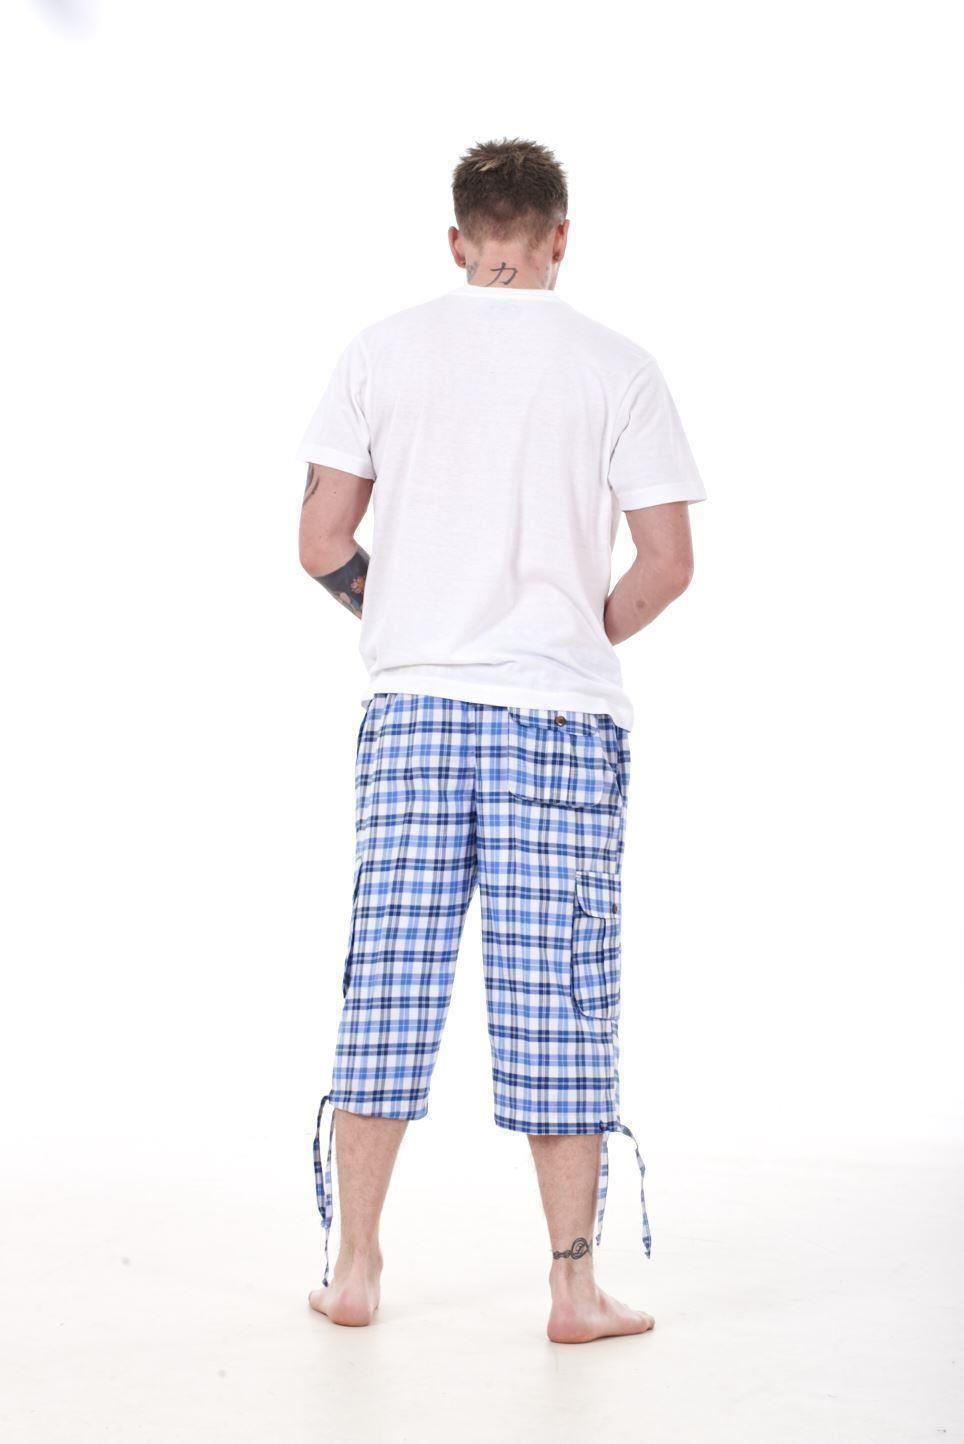 Mens-Check-Shorts-3-4-Length-by-Malay-Apparel-Cotton-Blend-Lounge-Casual-Wear thumbnail 50